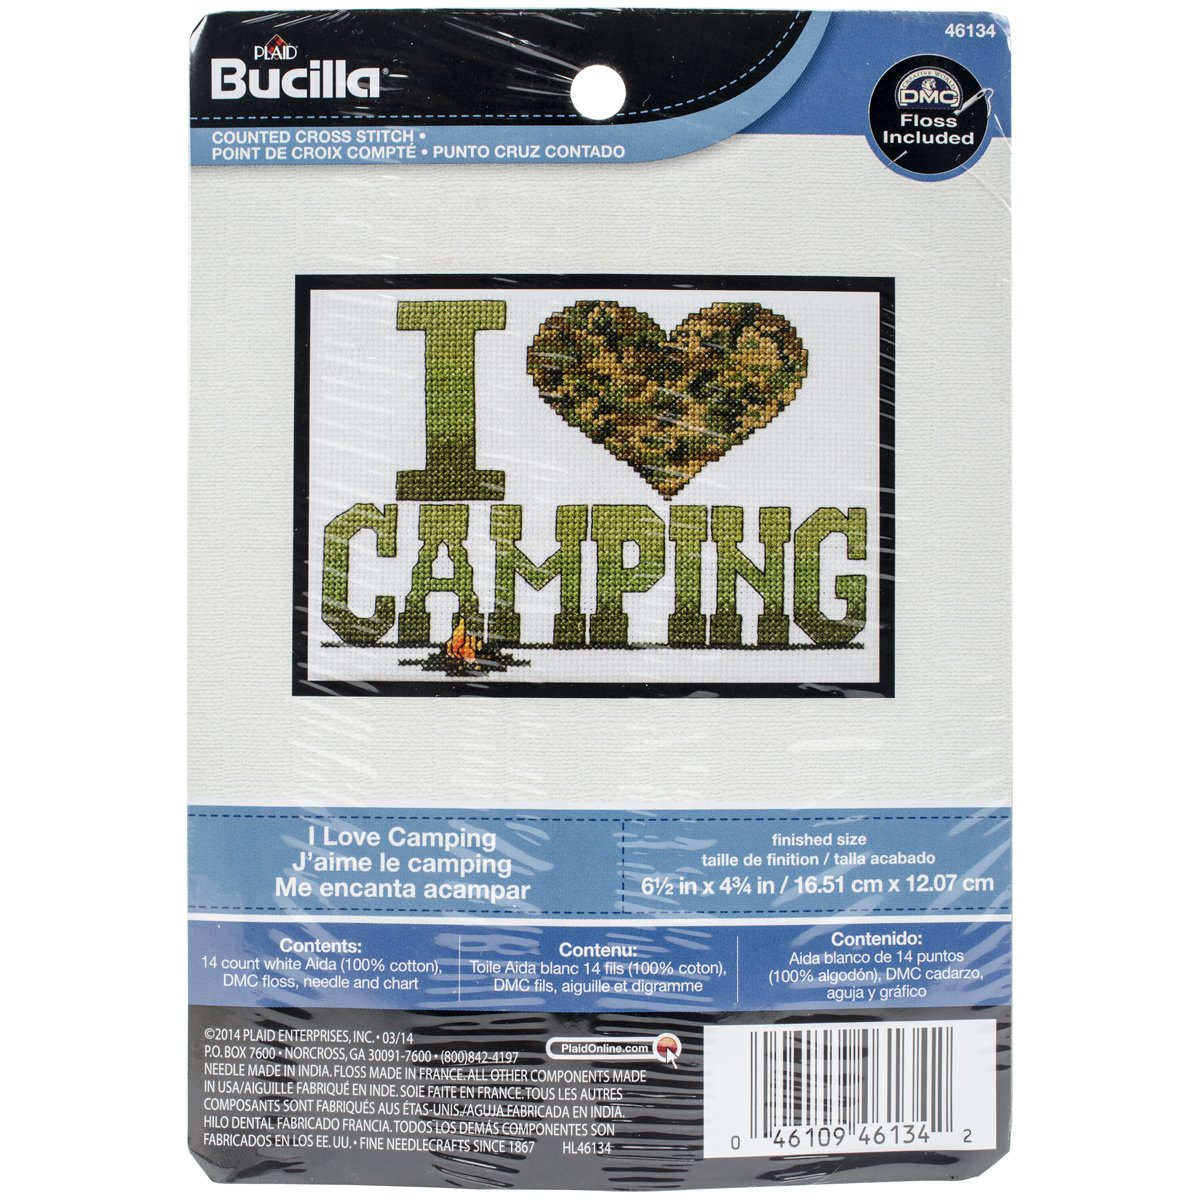 6.5 x 4.75 Bucilla 46134 My 1st Counted Cross Stitch I Love Camping Kit